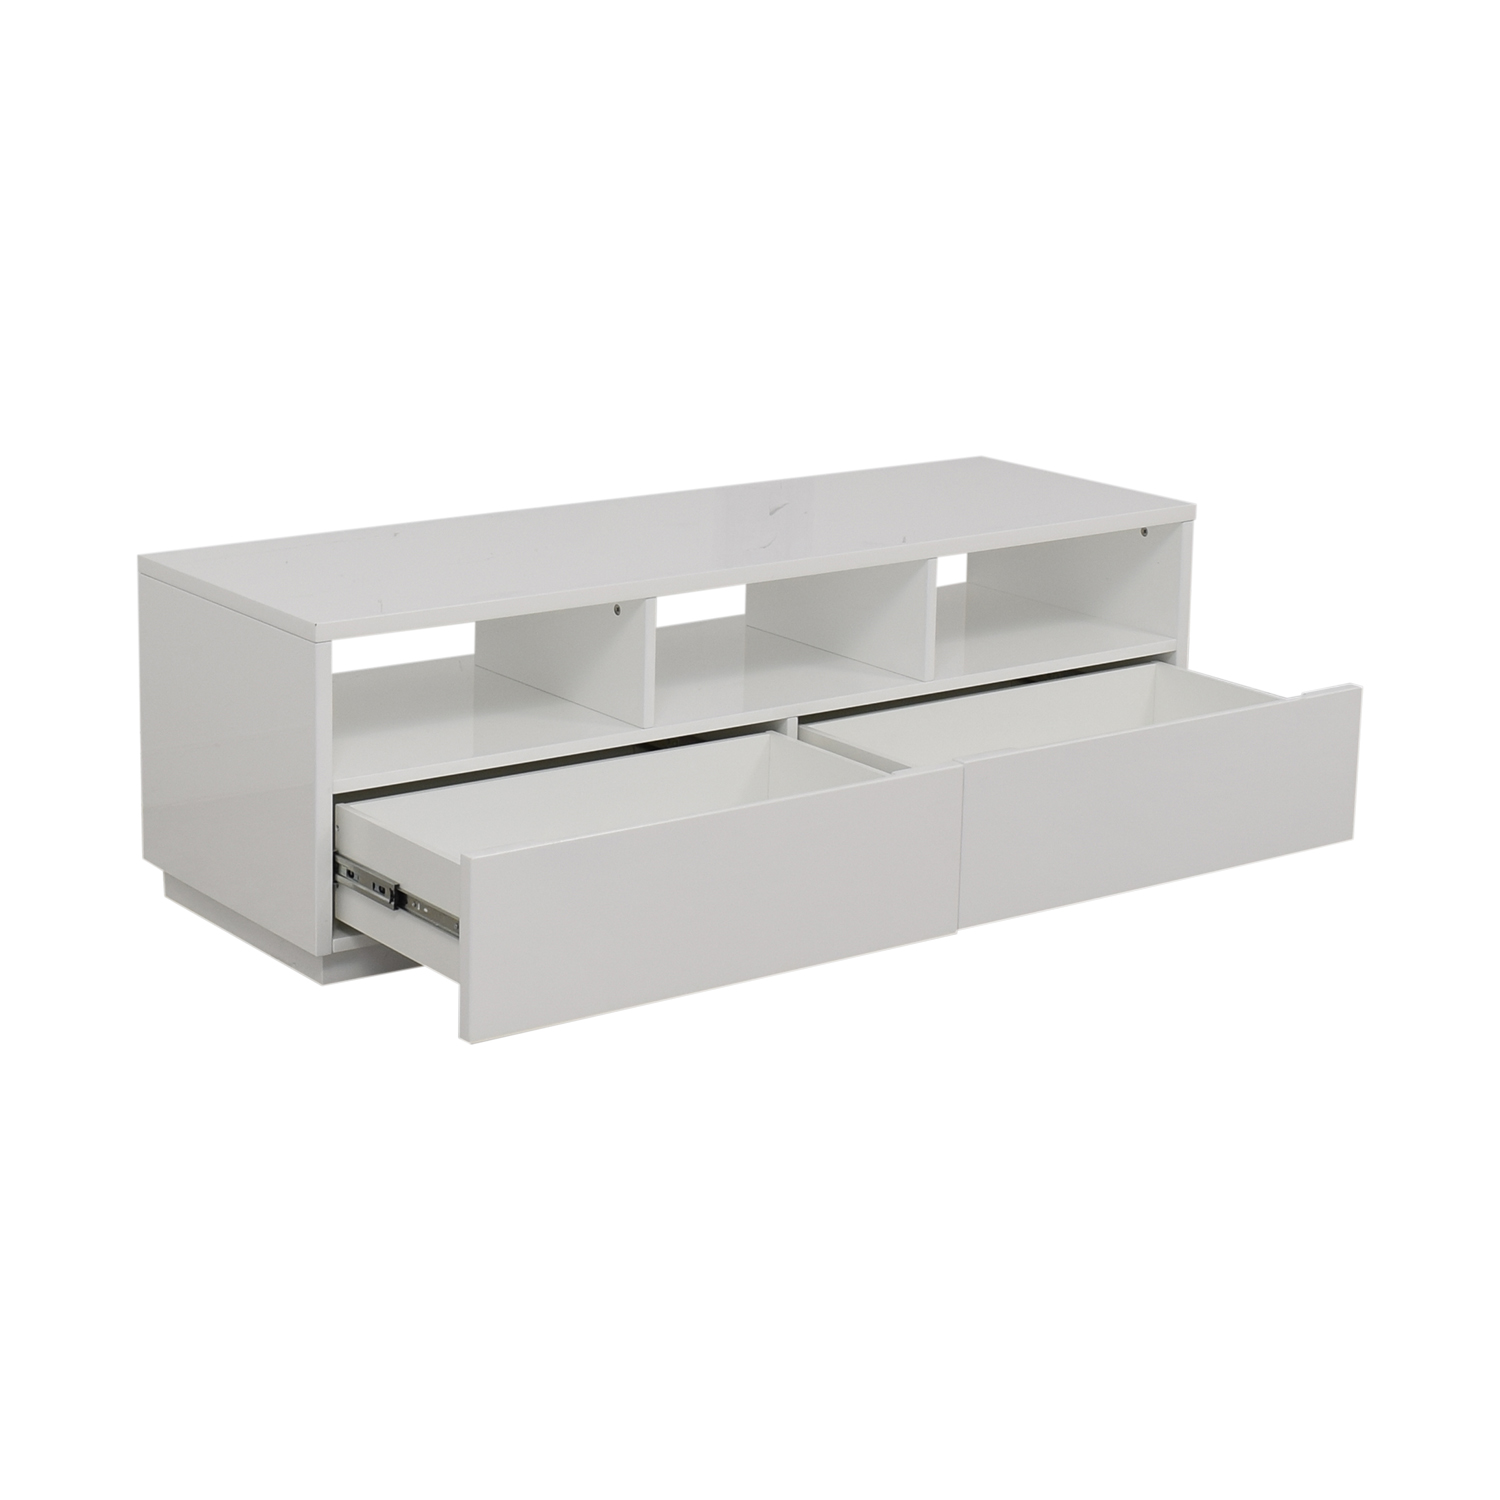 CB2 Chill White Two-Drawer Media Console sale